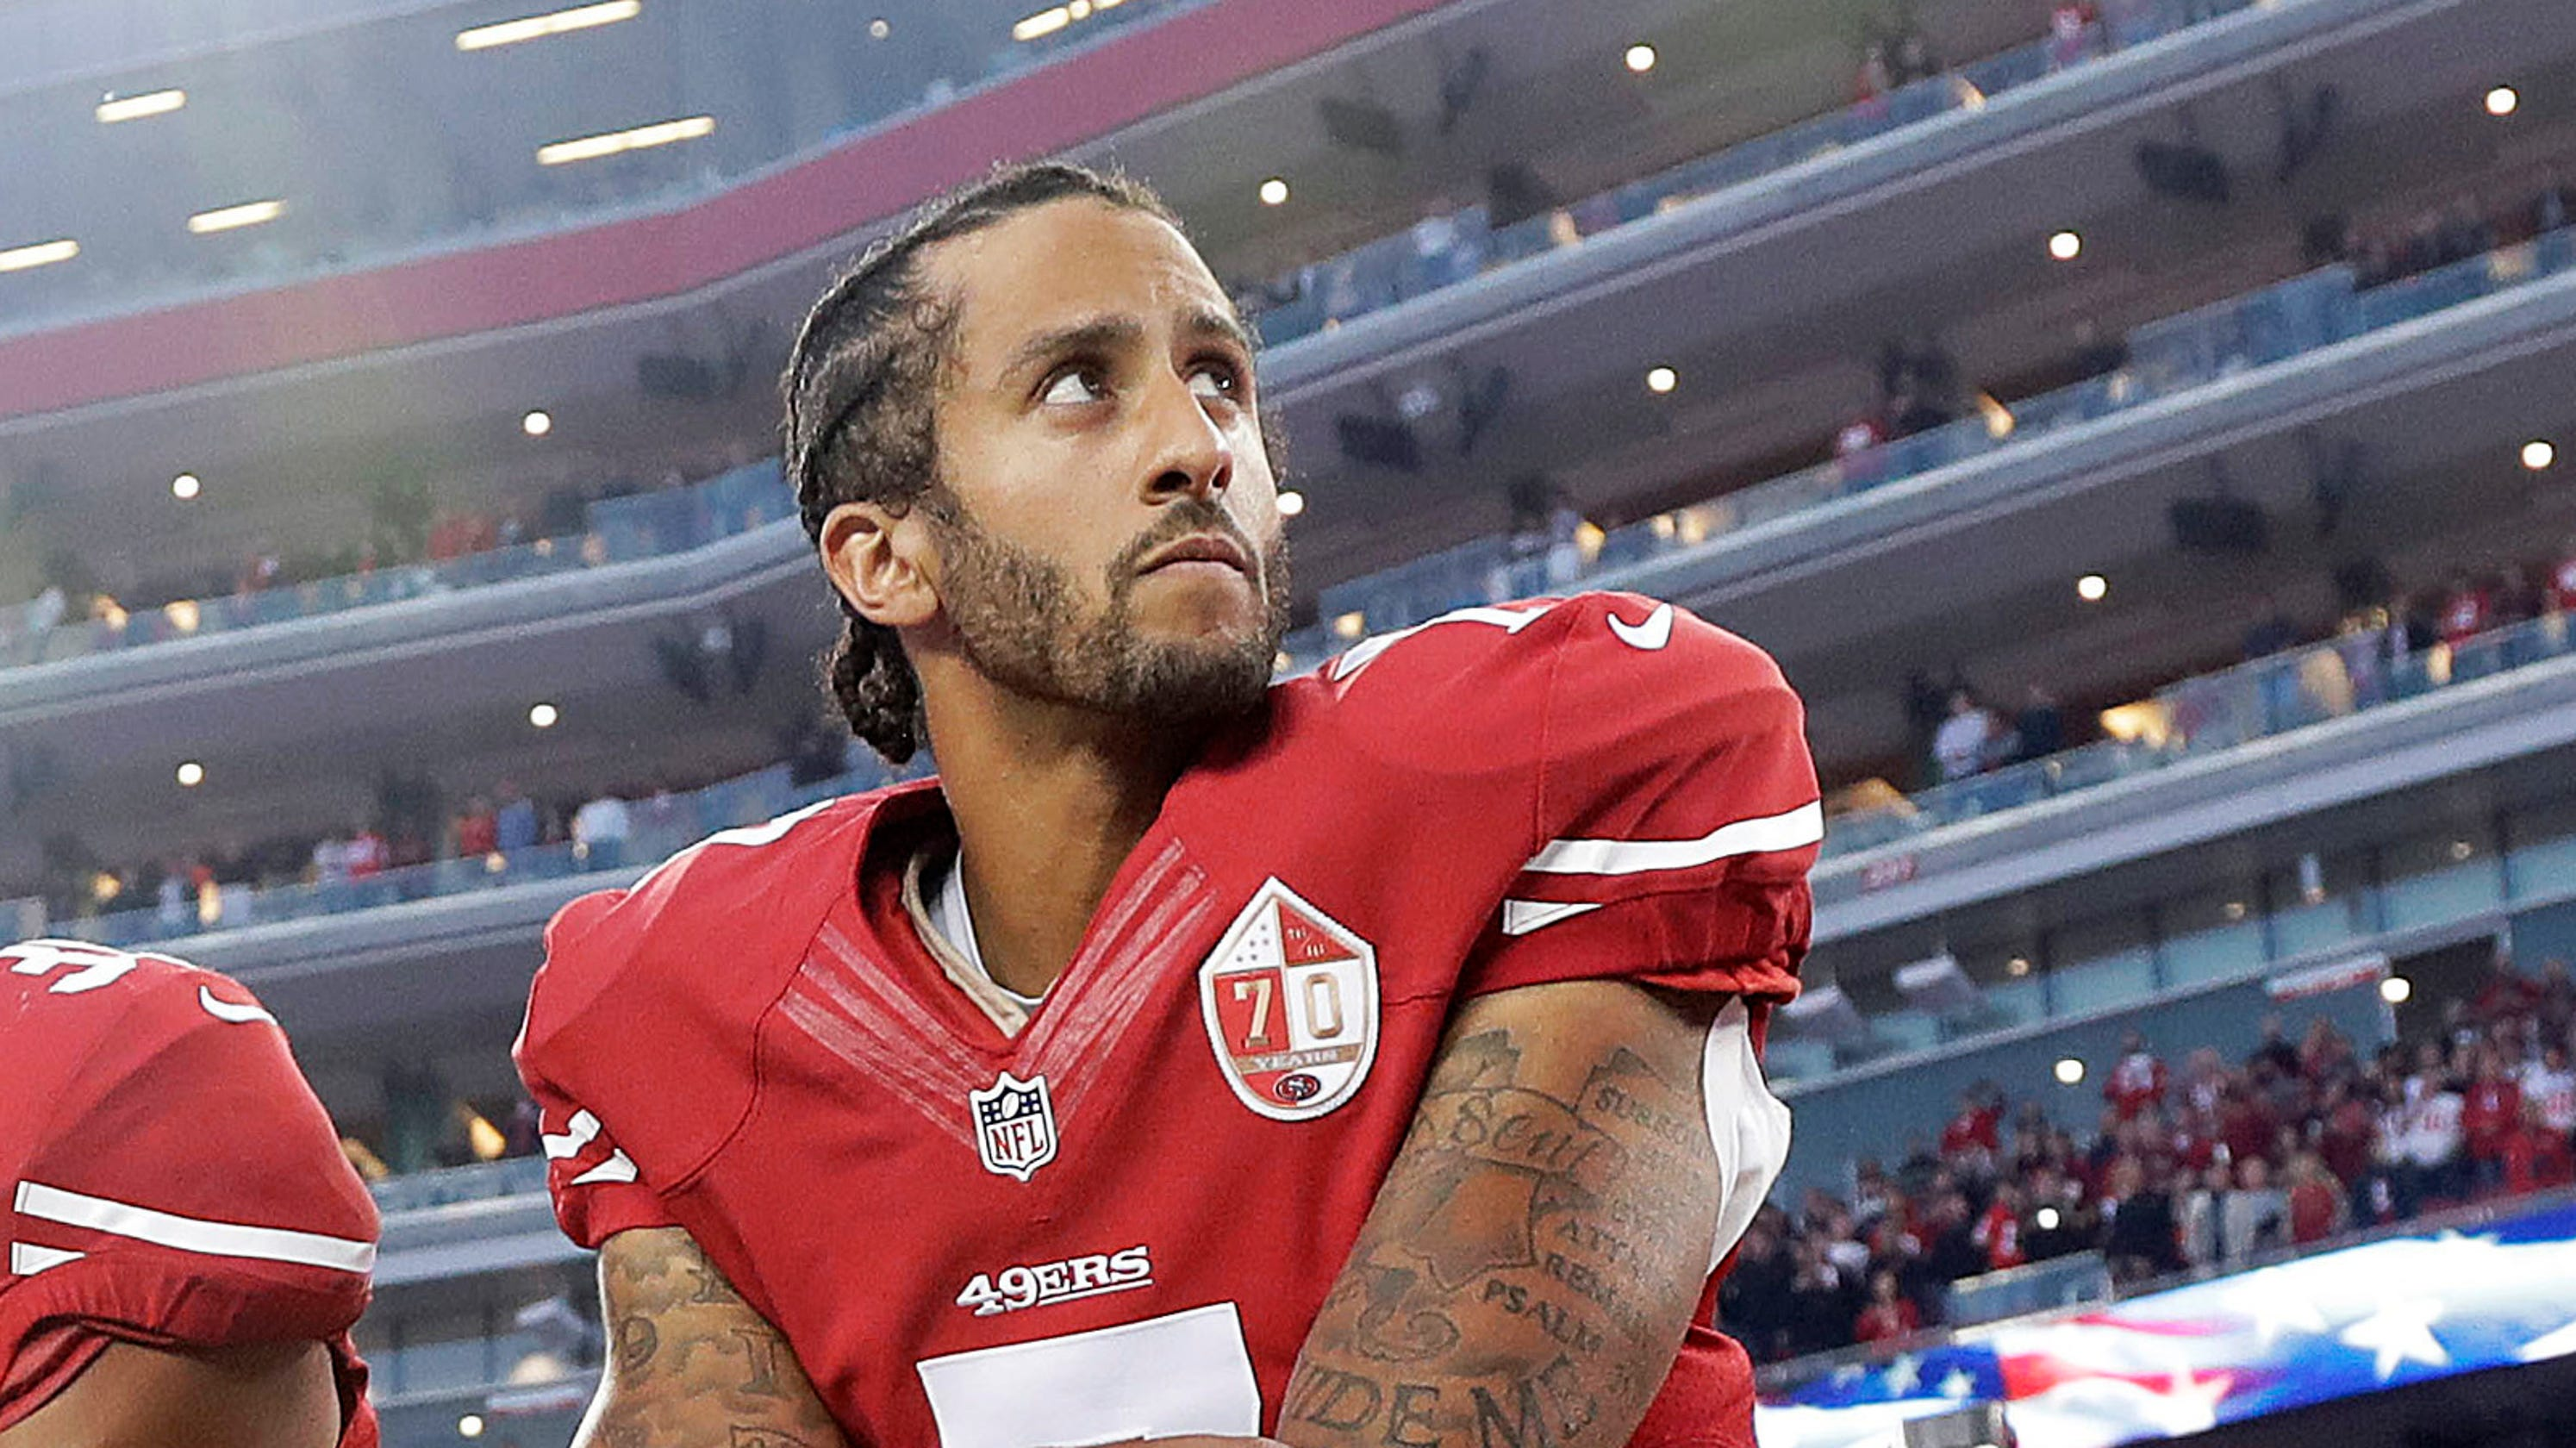 Gubernatorial candidate: I was wrong to call Kaepernick 'horse's ass' over NFL protest